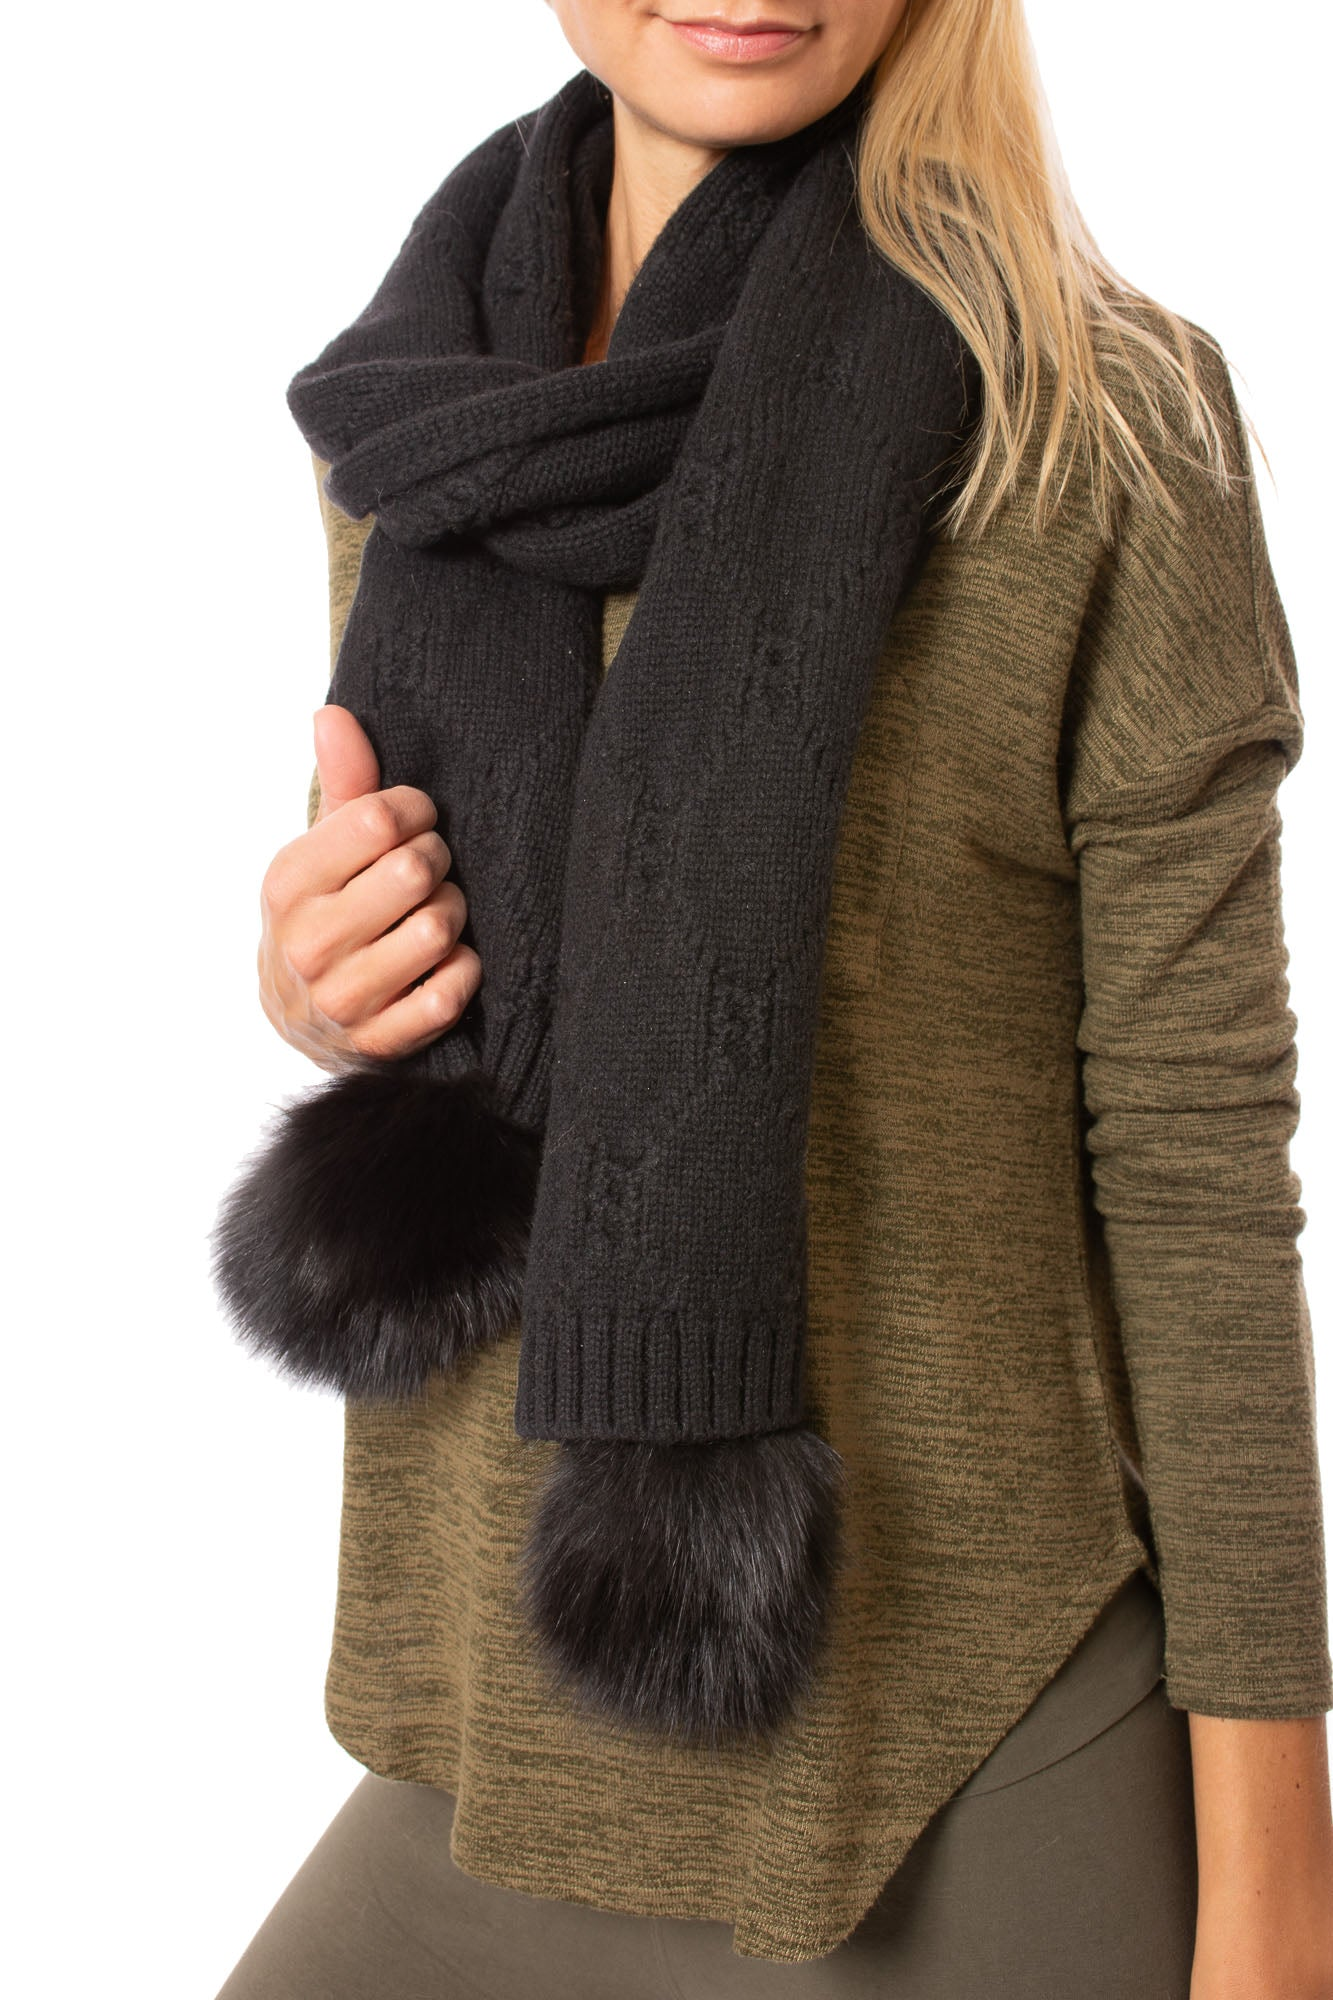 Mitchie's - Wool Knit Scarf w/Fox Fur Trim Pom (ims10, Black)